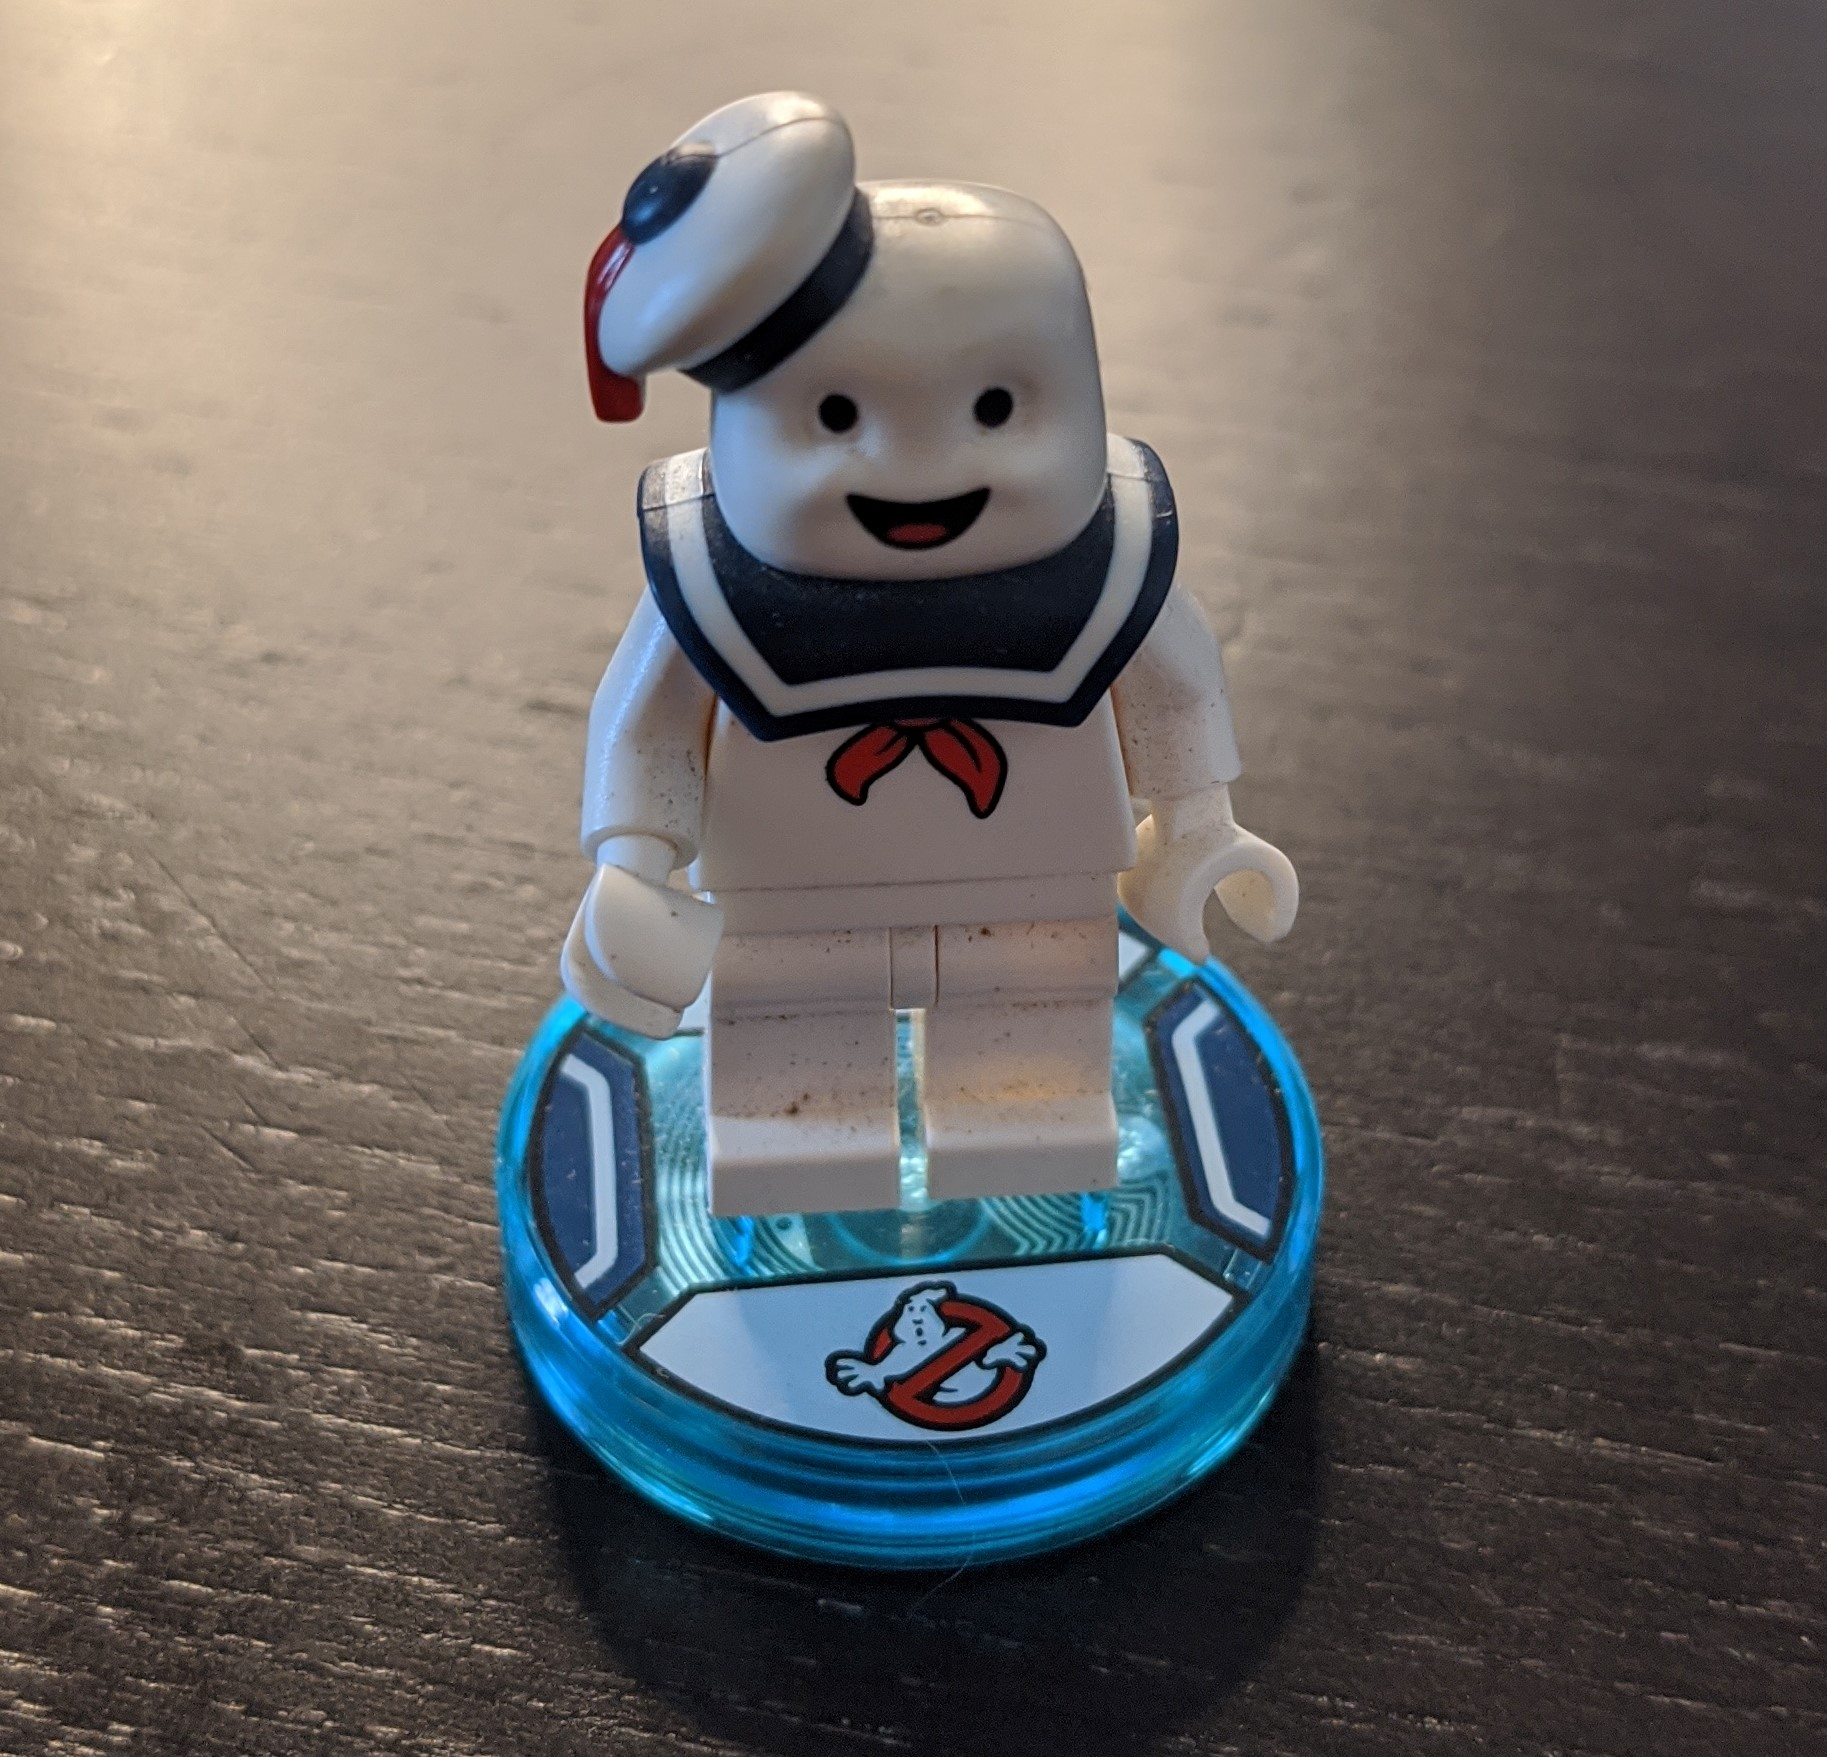 Lego Stay Puft